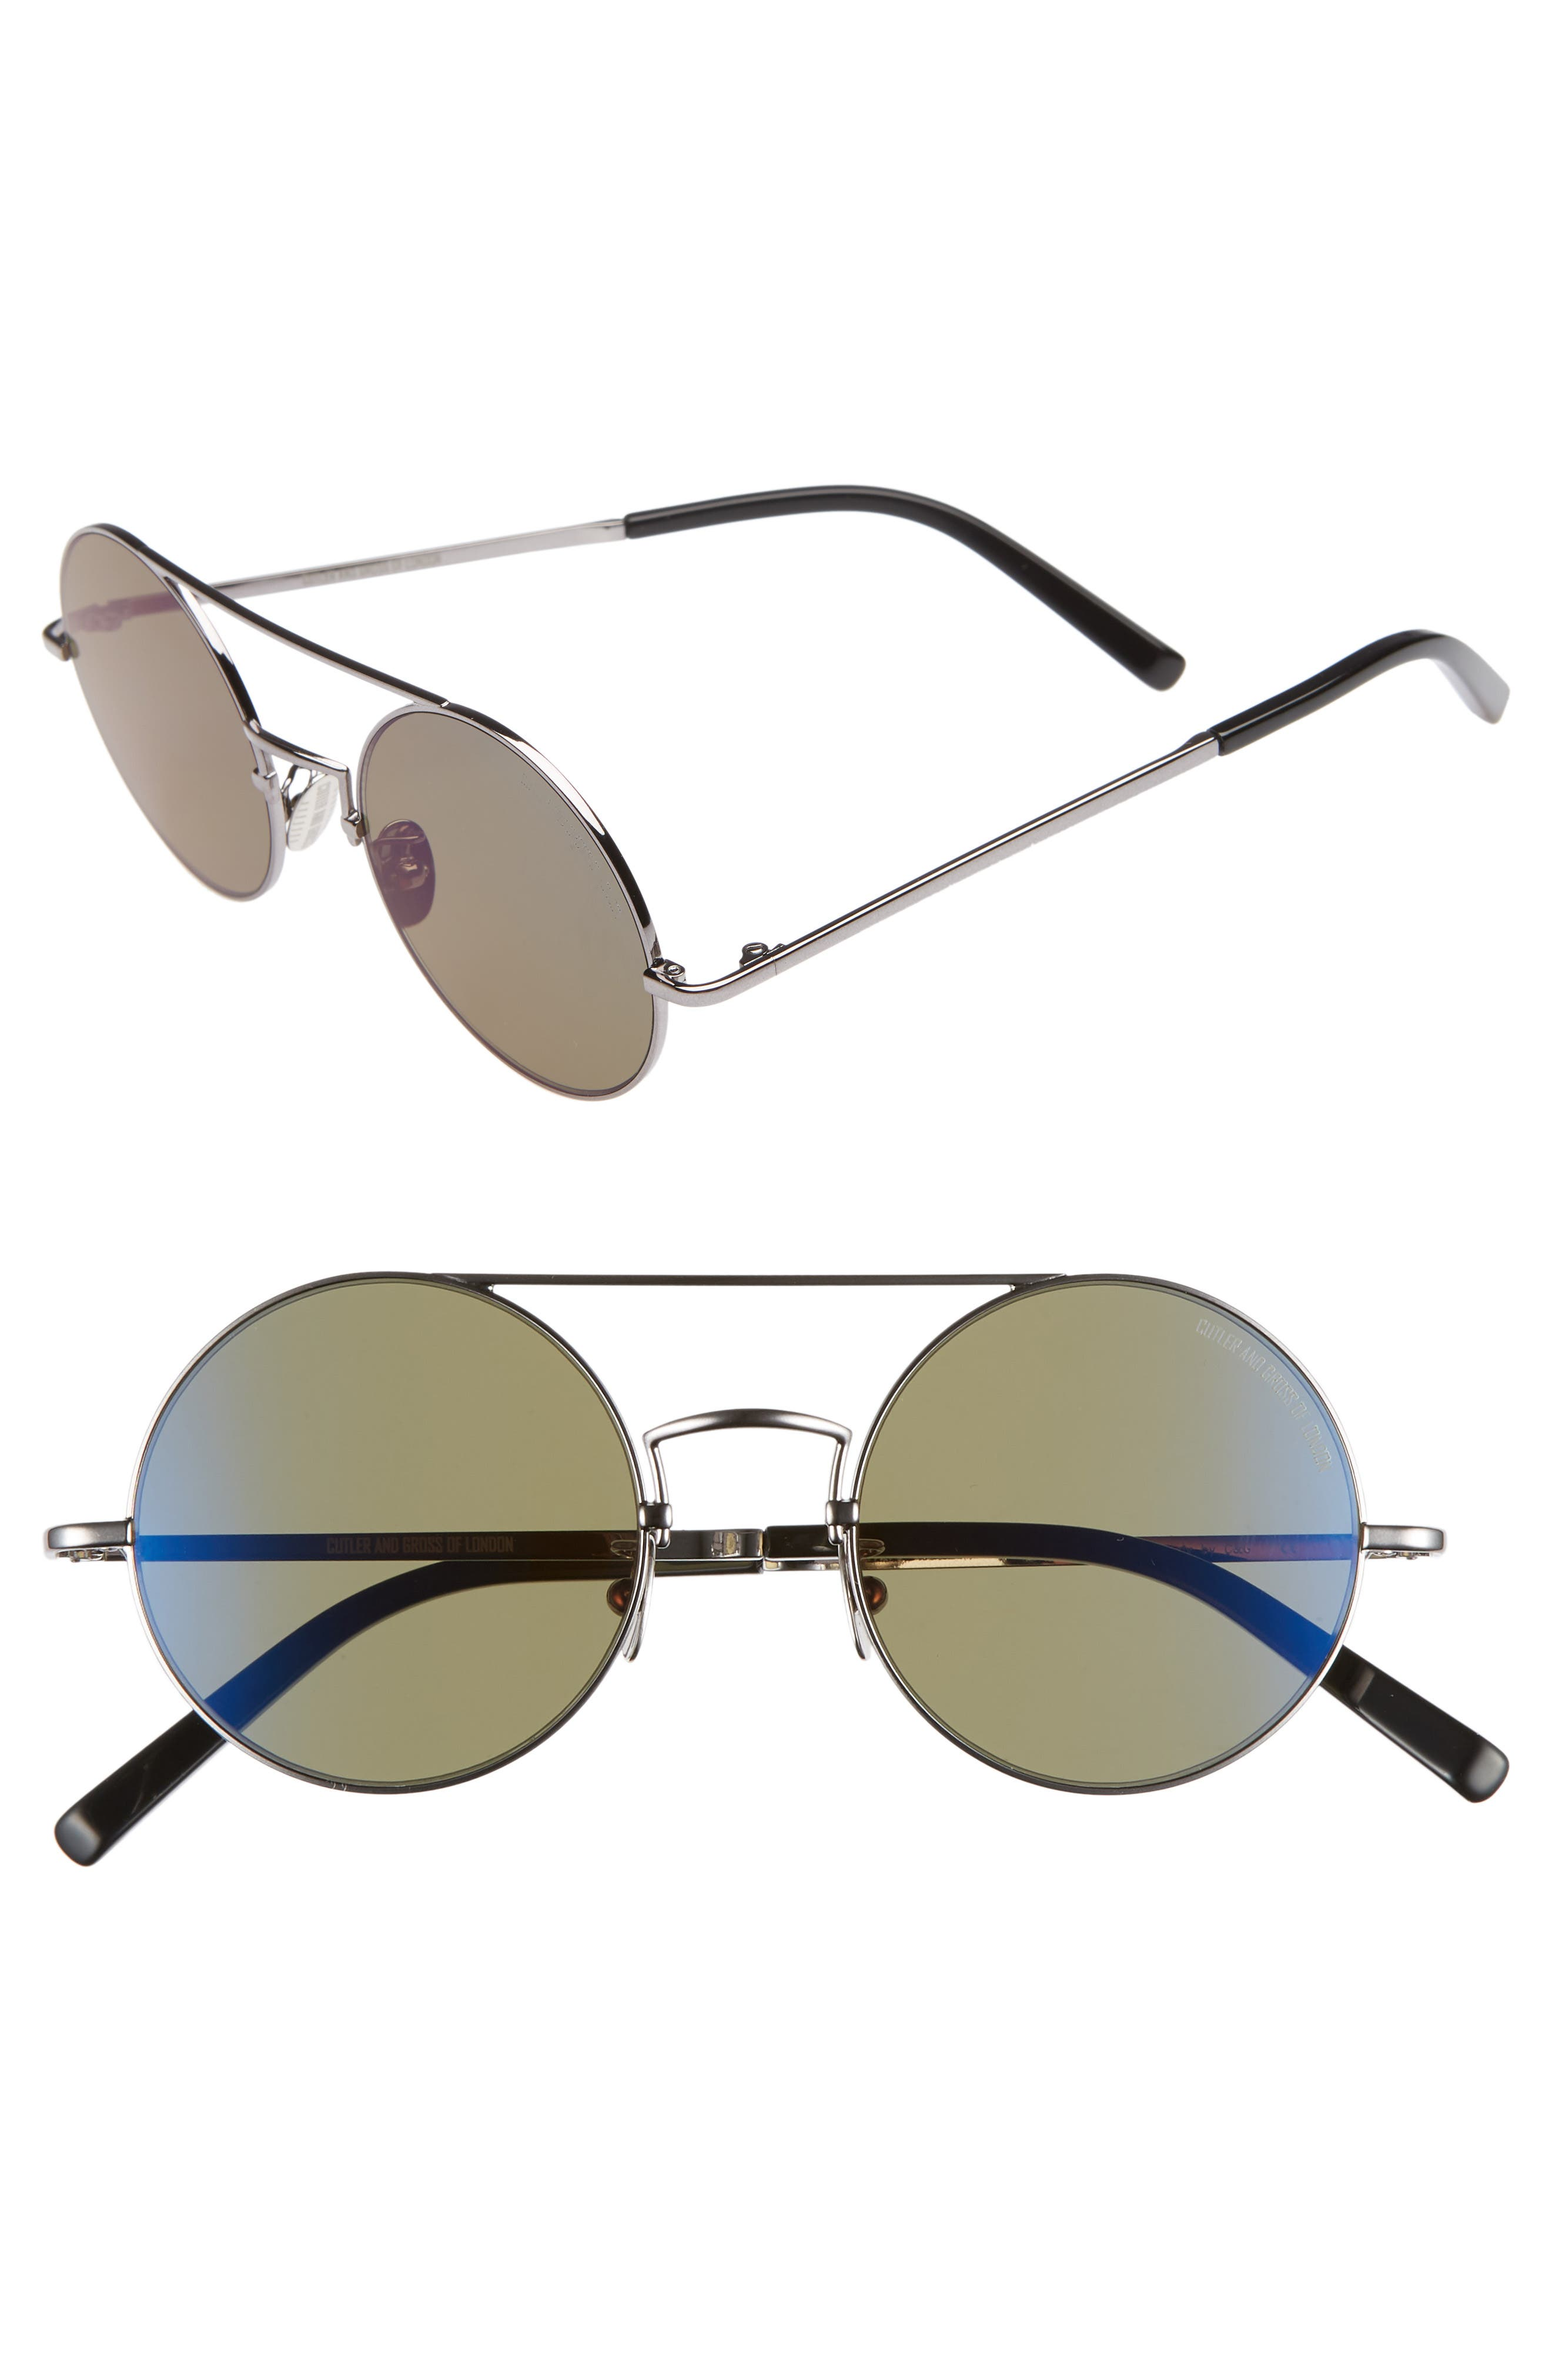 CUTLER AND GROSS 49mm Polarized Round Sunglasses, Main, color, RUTHENIUM METAL/ DARK GREEN